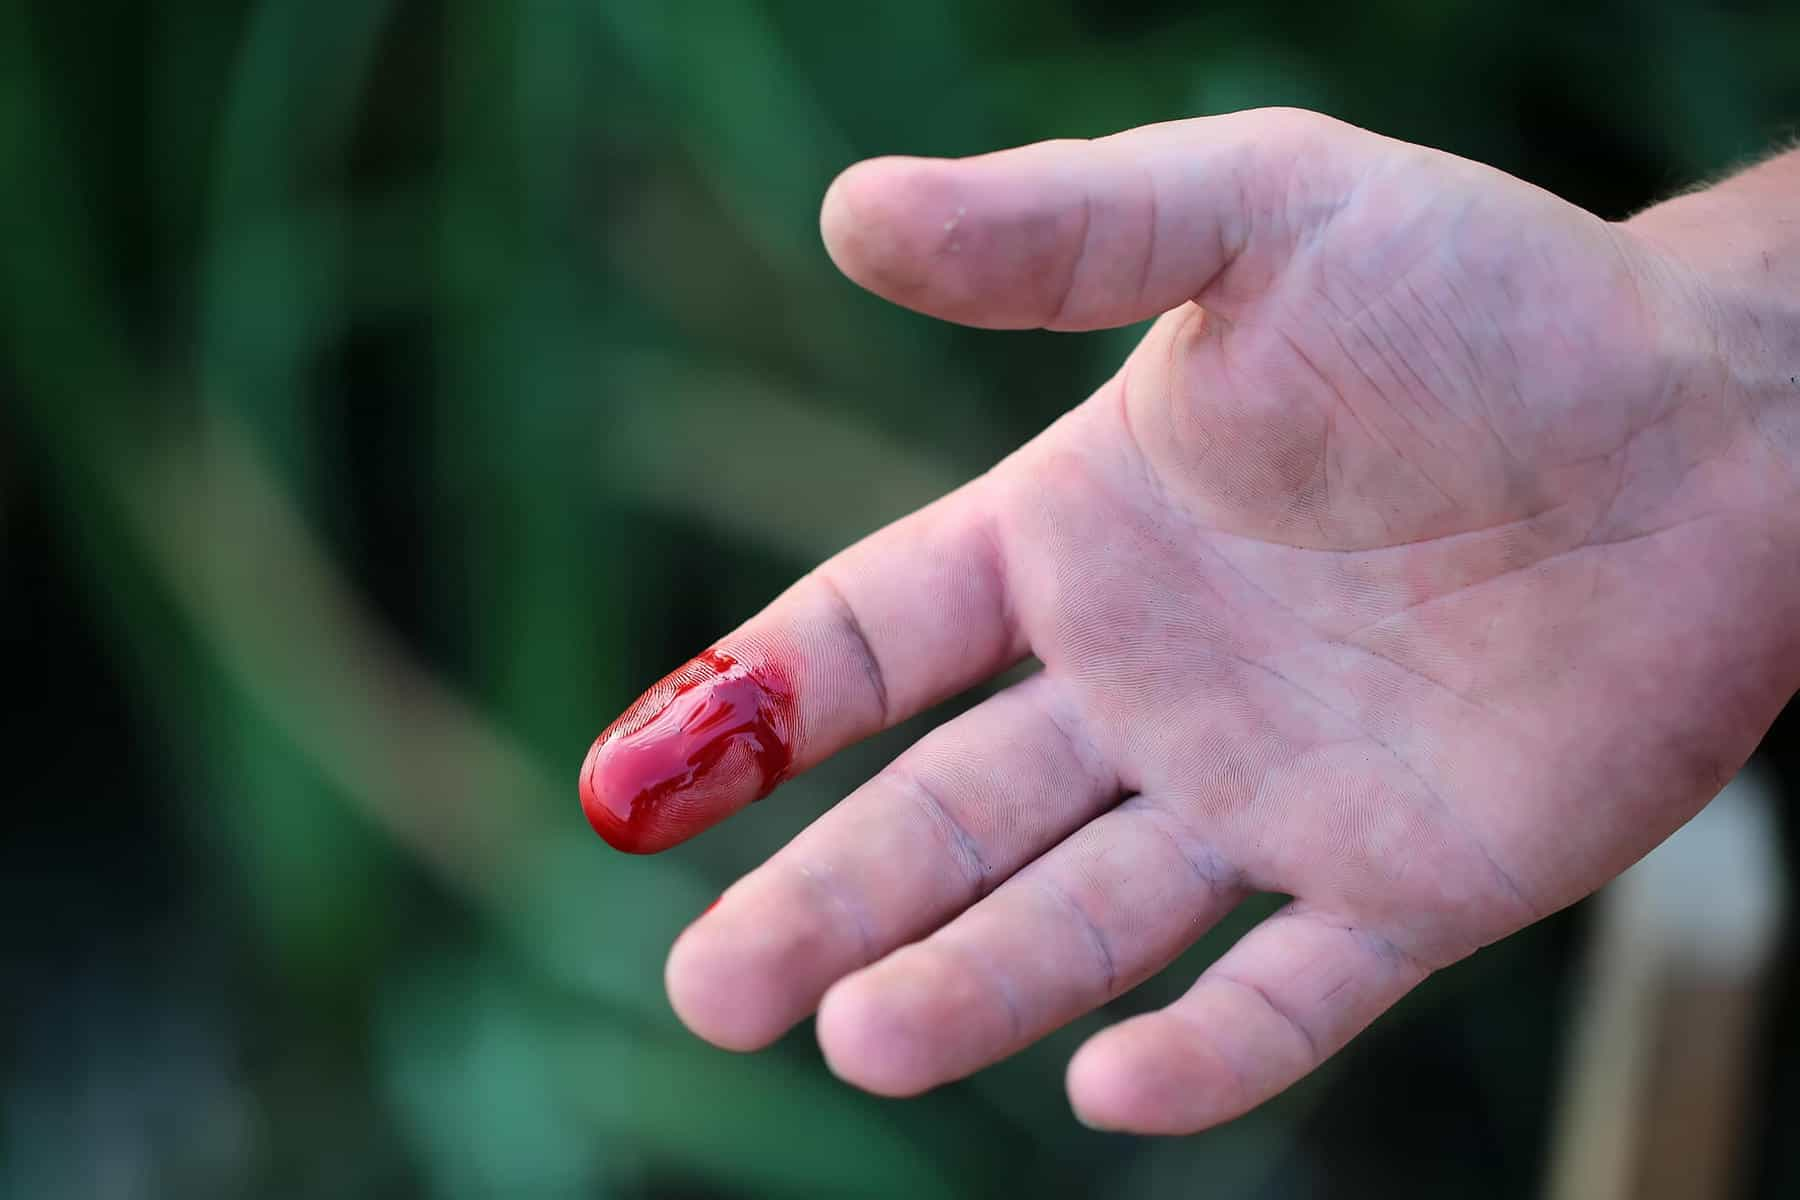 Finger cut